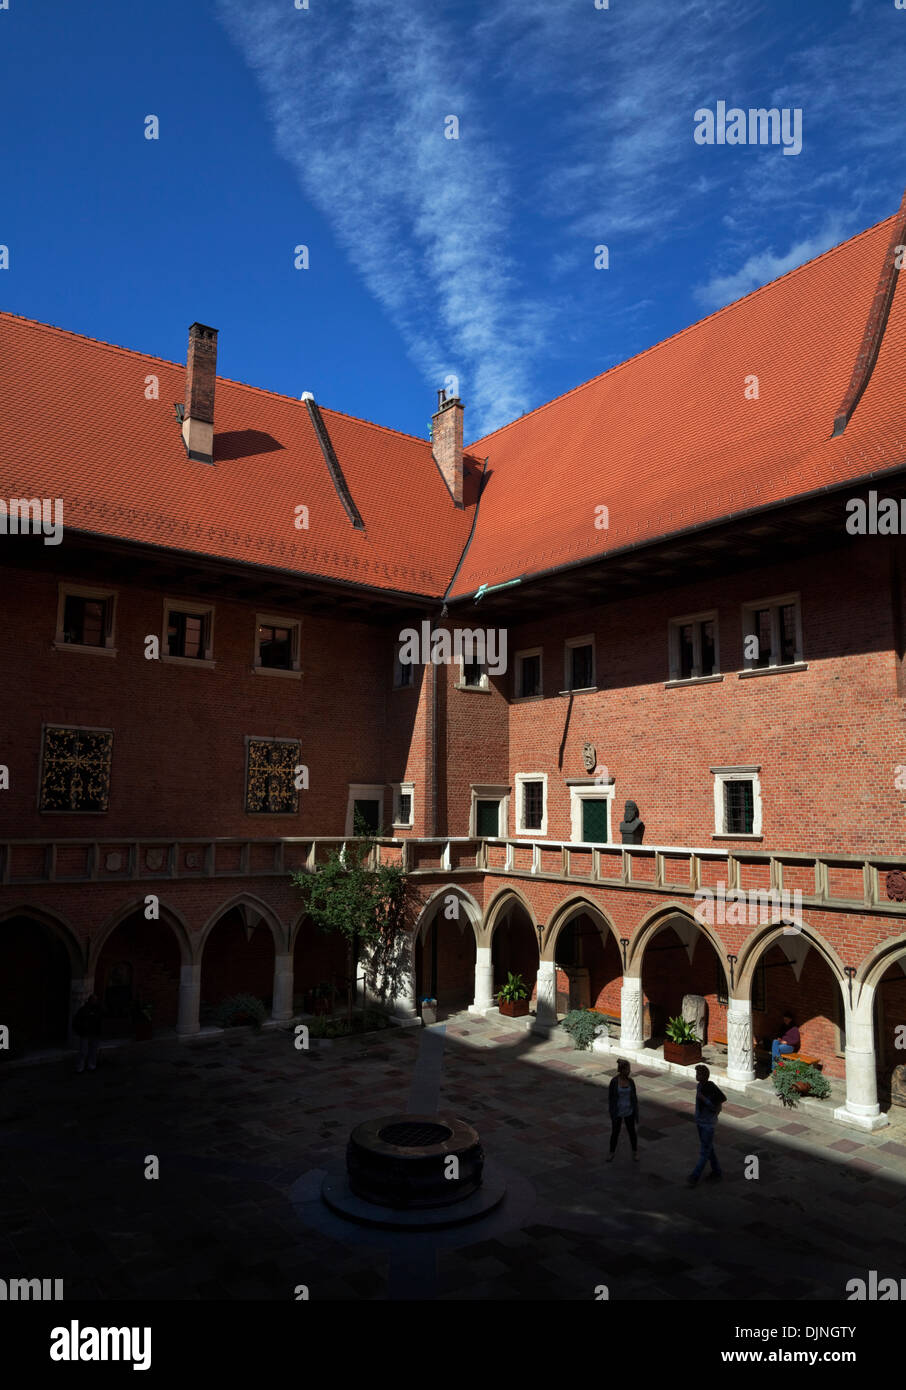 Courtyard of 15th Century Jagiellonian University where the astronomer Copernicus graduated as a student, Old Town, Krakow, Poland. - Stock Image